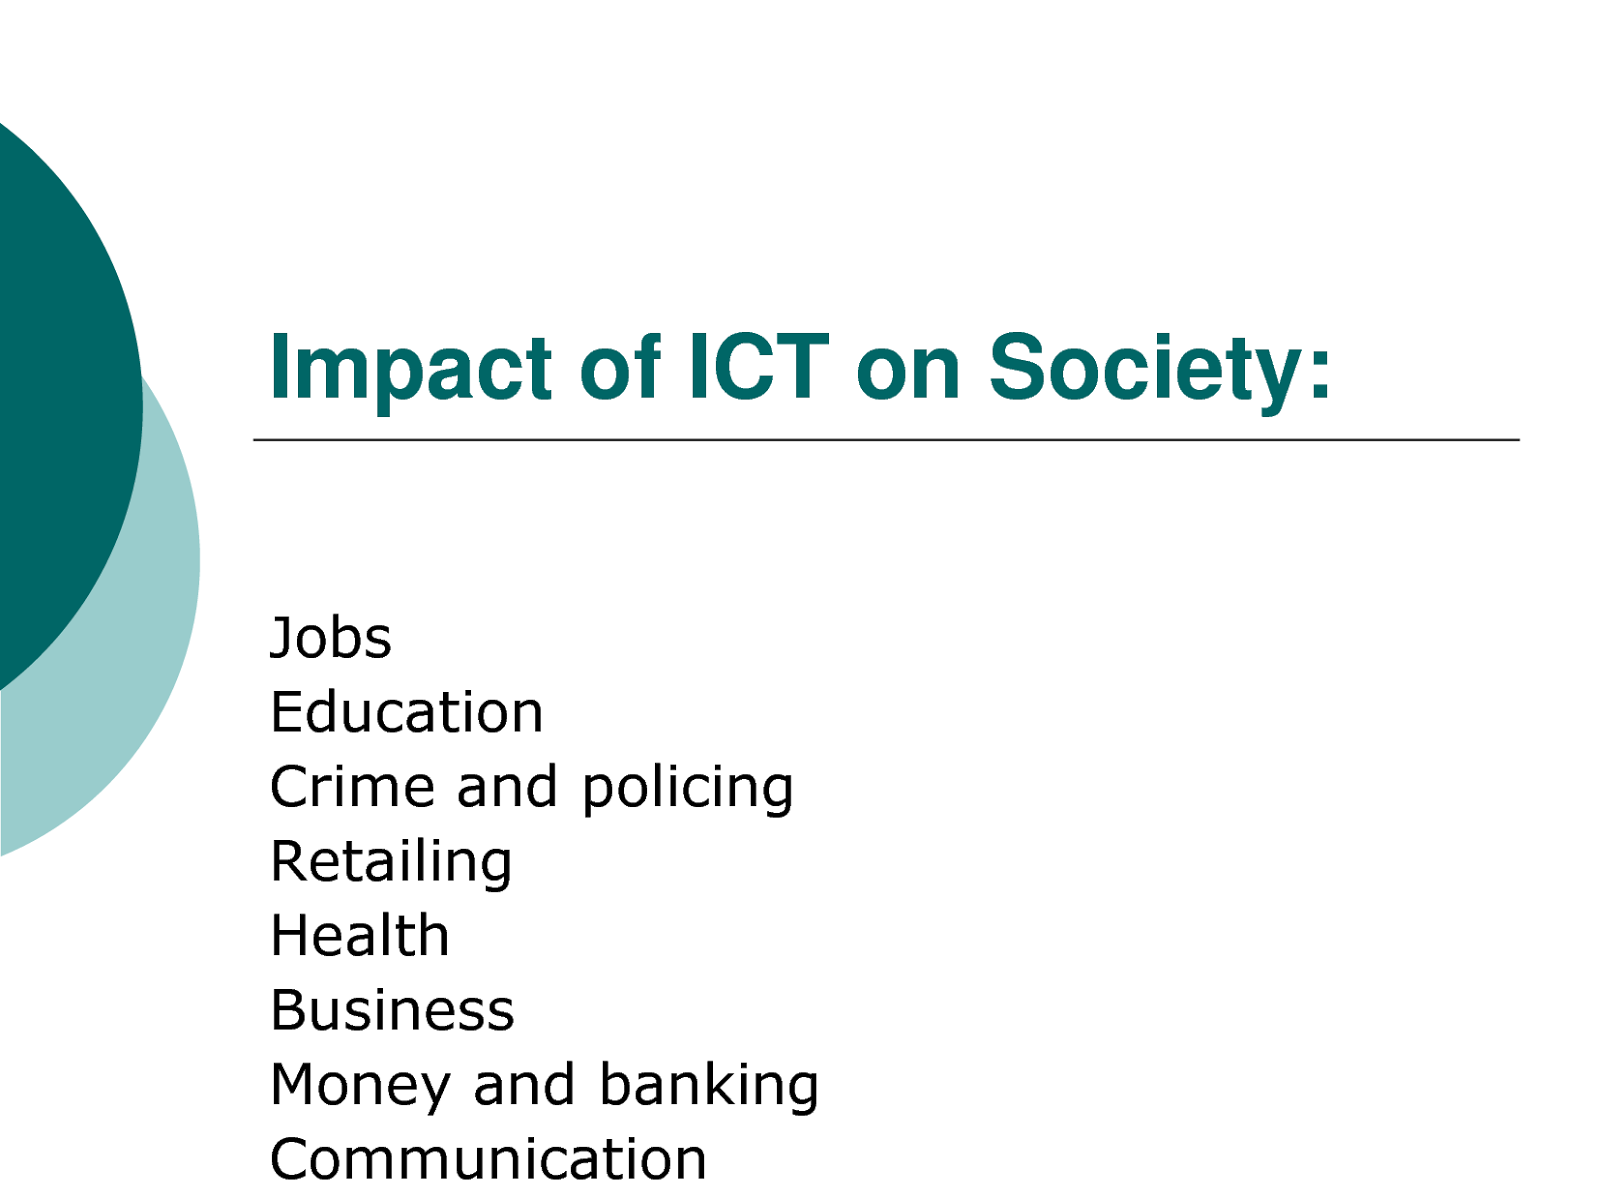 The Alteration of Forms and Practices of Social Change Caused by ICT